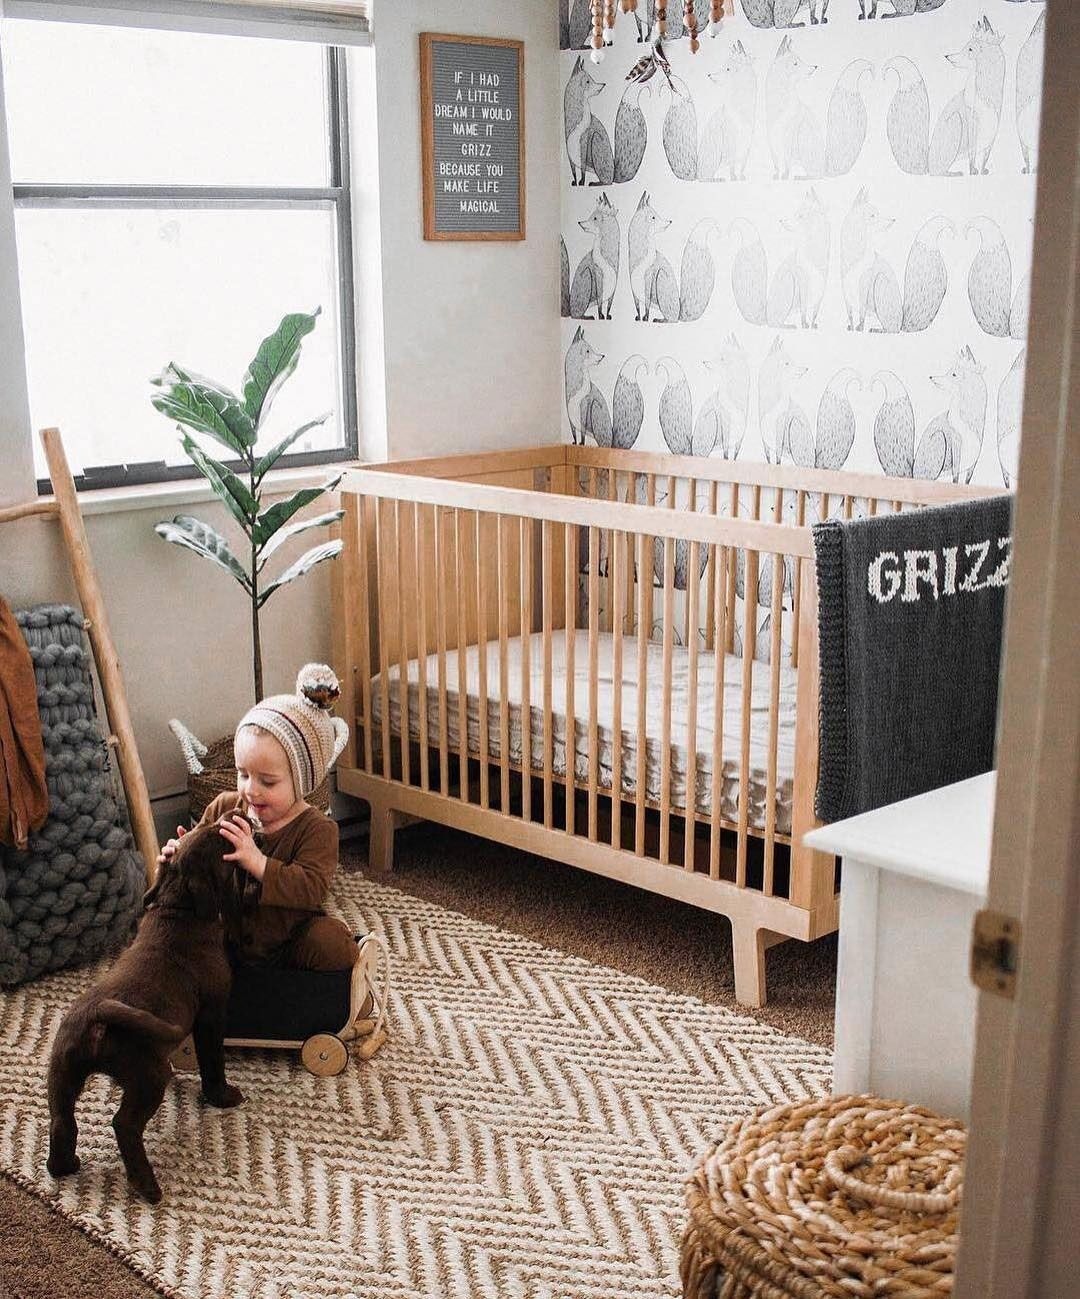 HOW TO BRING A NATURAL VIBE TO THE NURSERY | Natural baby room